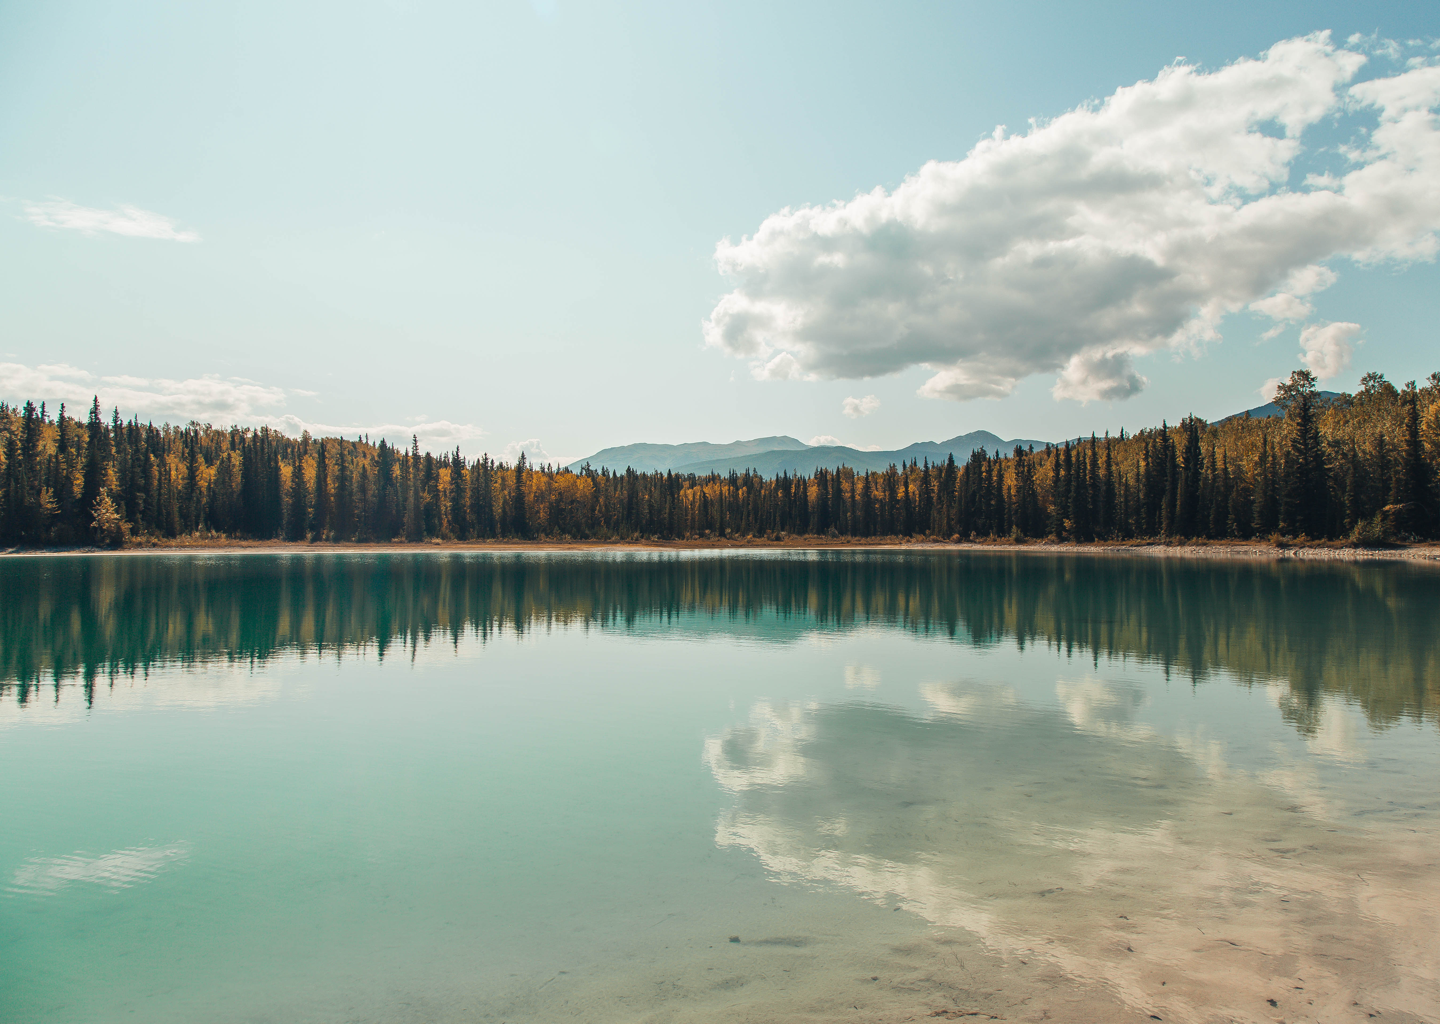 Reflections on a lake in Northern British Columbia, Canada.